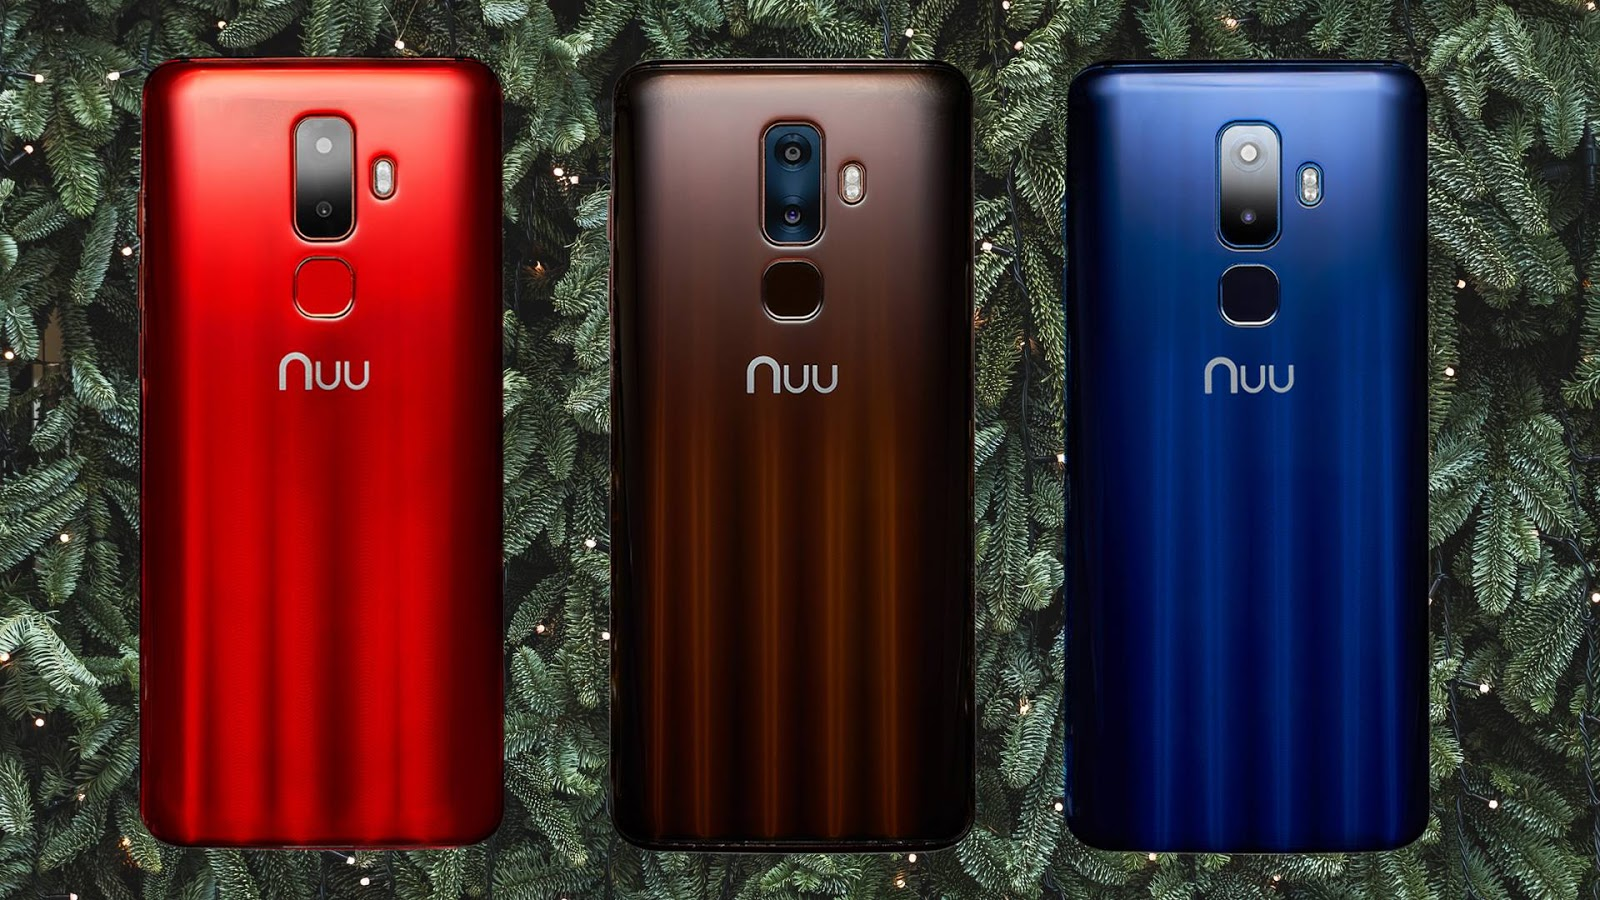 Inspired by Savannah: NUU Mobile Launches G1 Smartphone